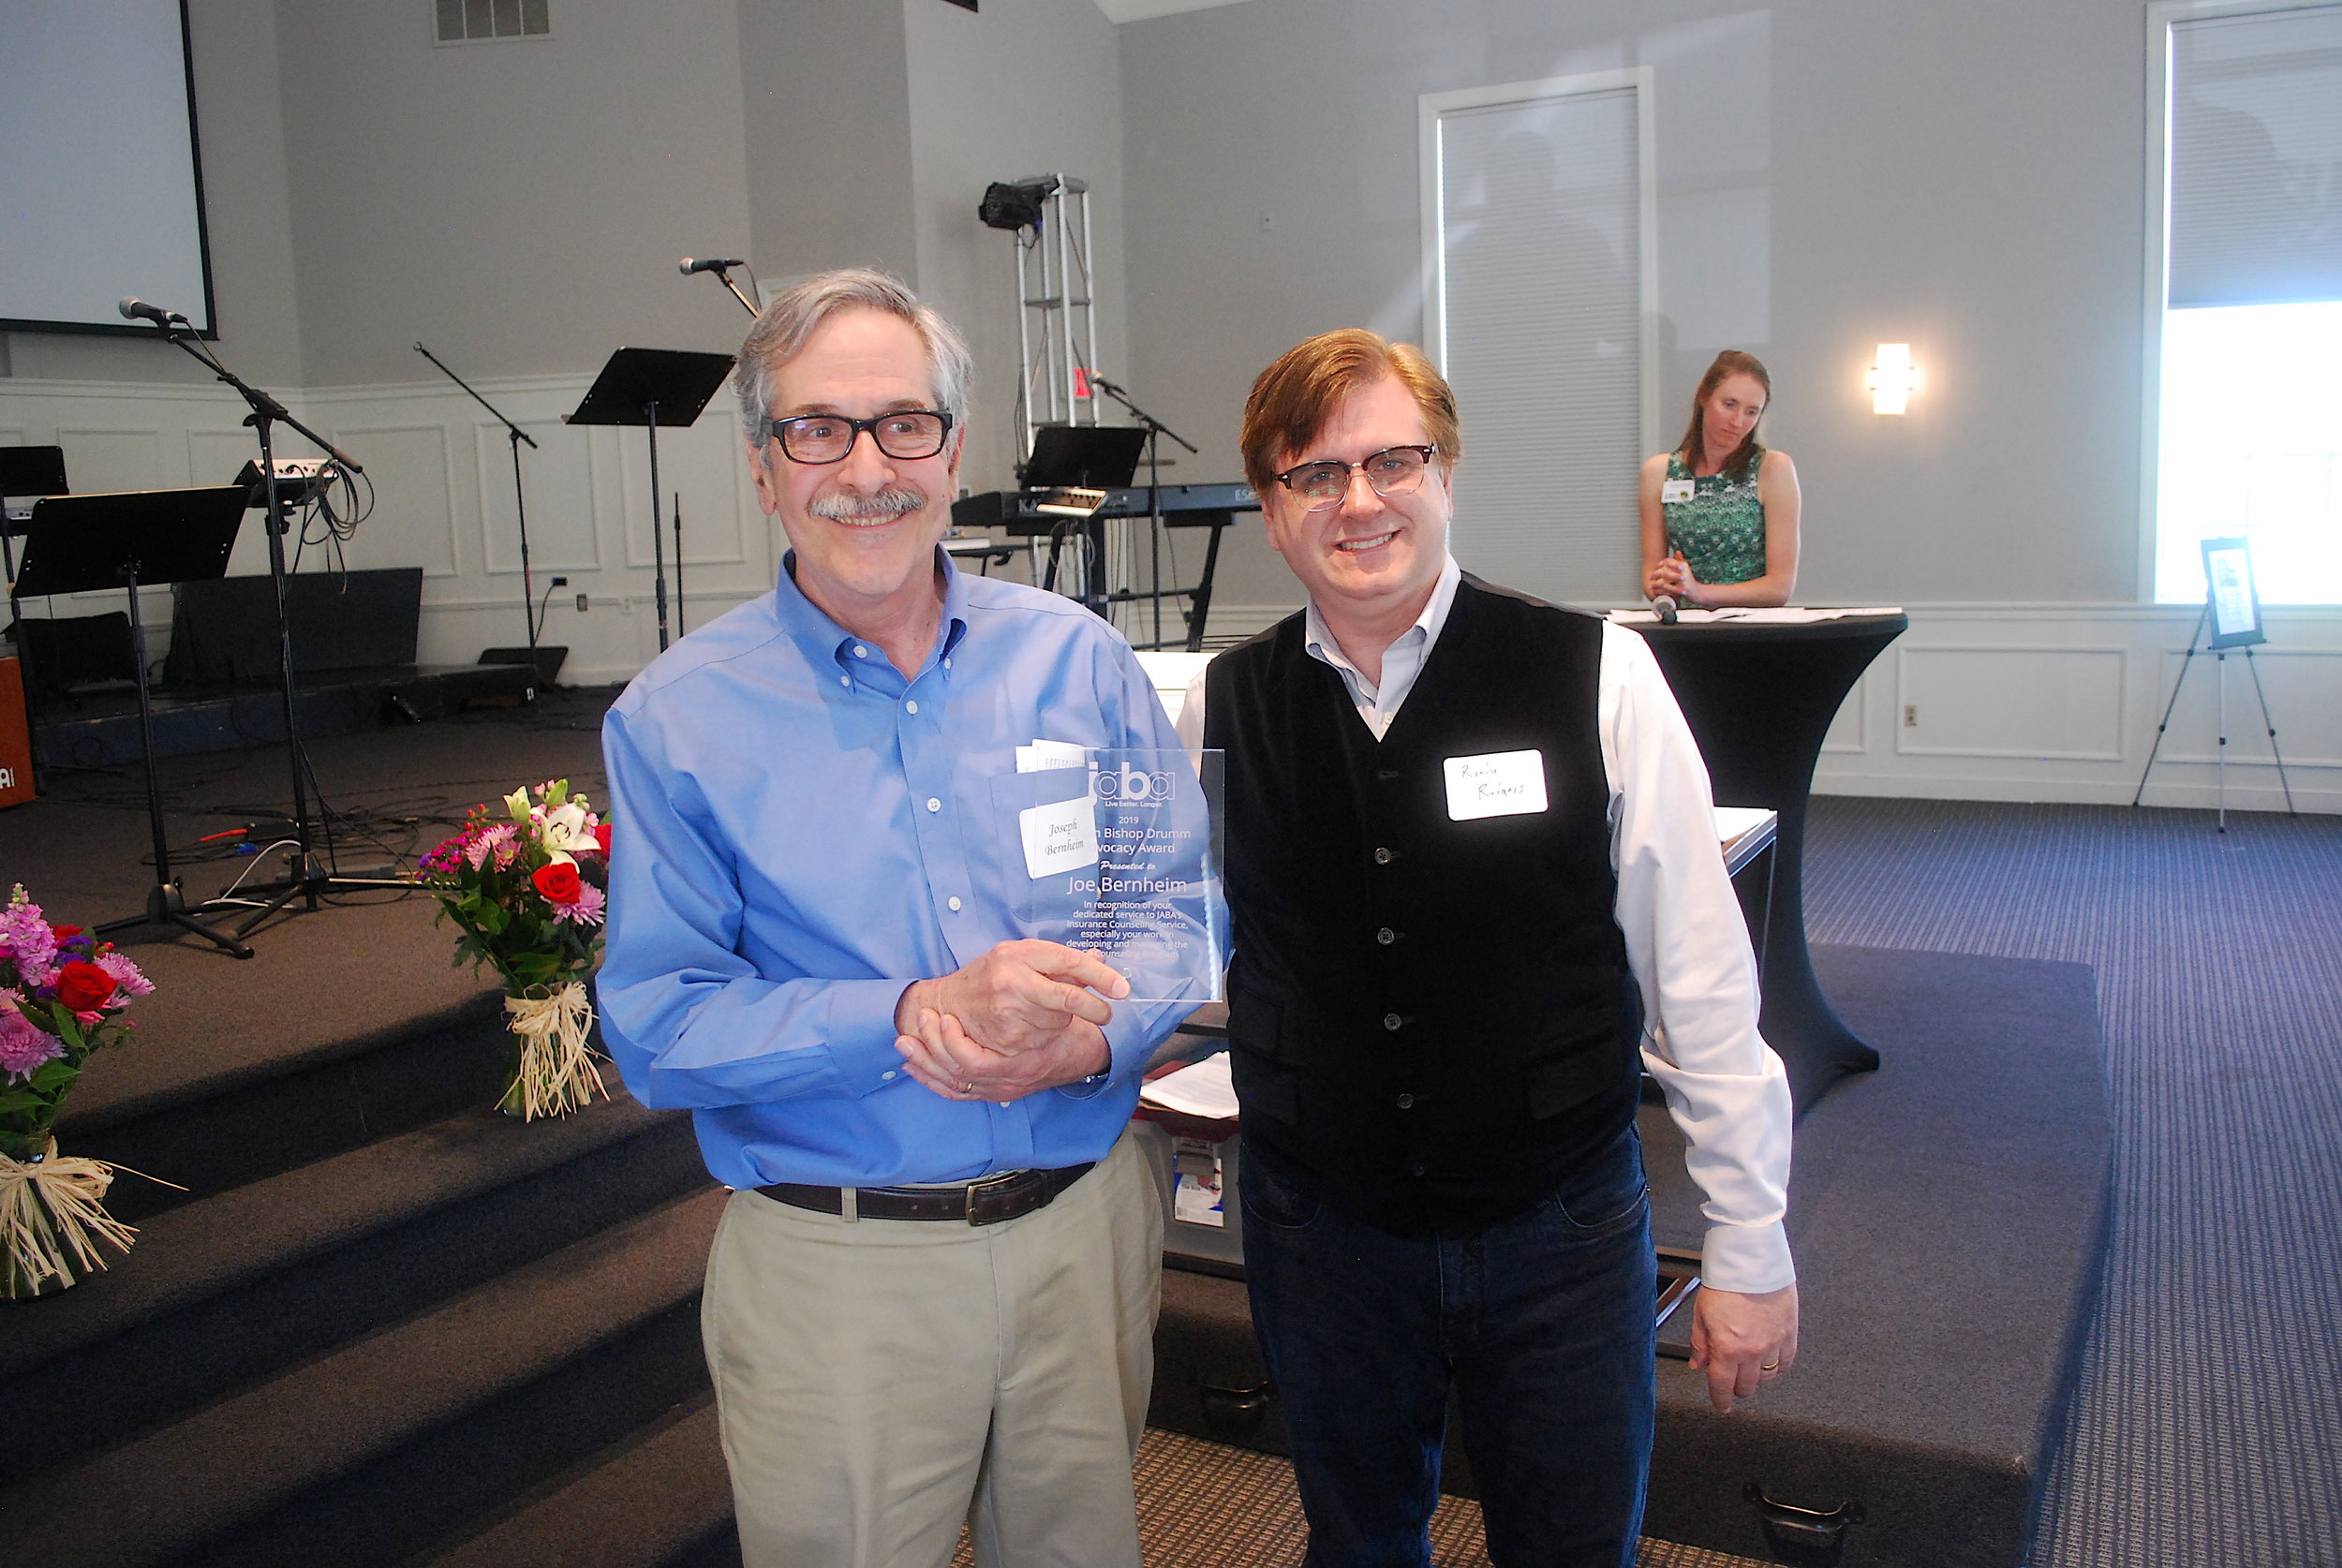 Insurance Counseling program volunteer Joe Bernheim, seen here with Insurance Couseling program director Randy Rodgers, received the 2nd Annual Susan Bishop Drumm Advocacy Award.